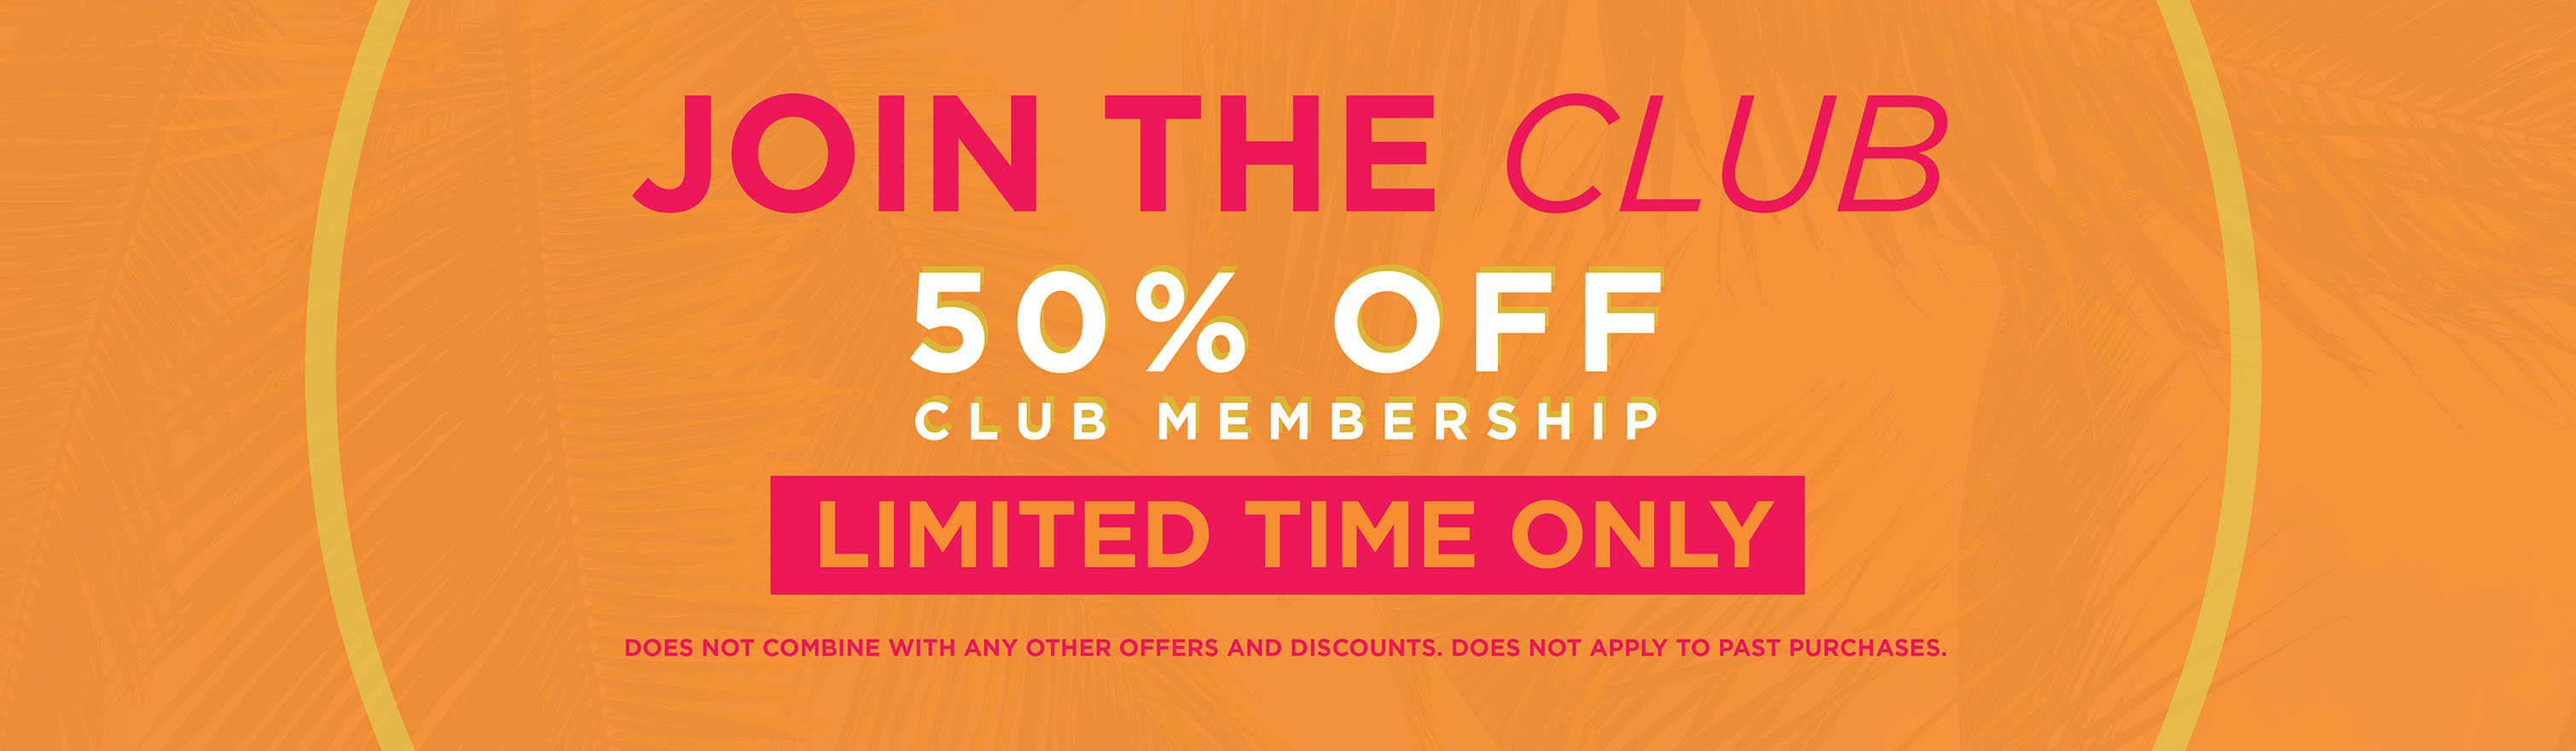 Join the Club for Only $15